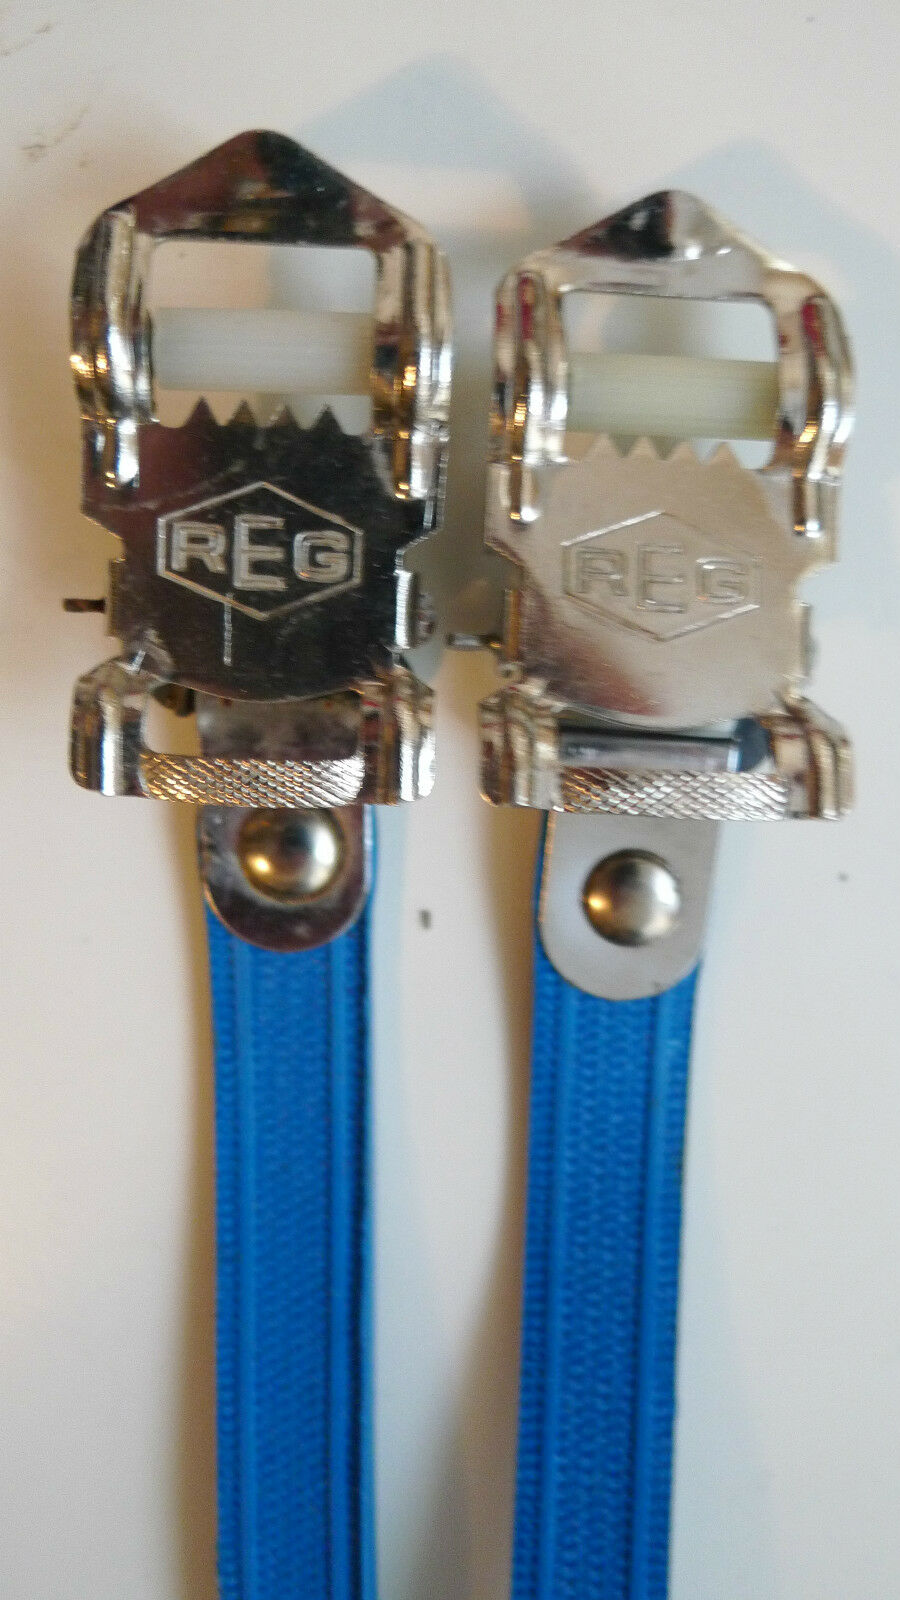 Vintage NOS Classic  80's REG Italian Pedal Straps bluee 4 your Vintage Ride  be in great demand